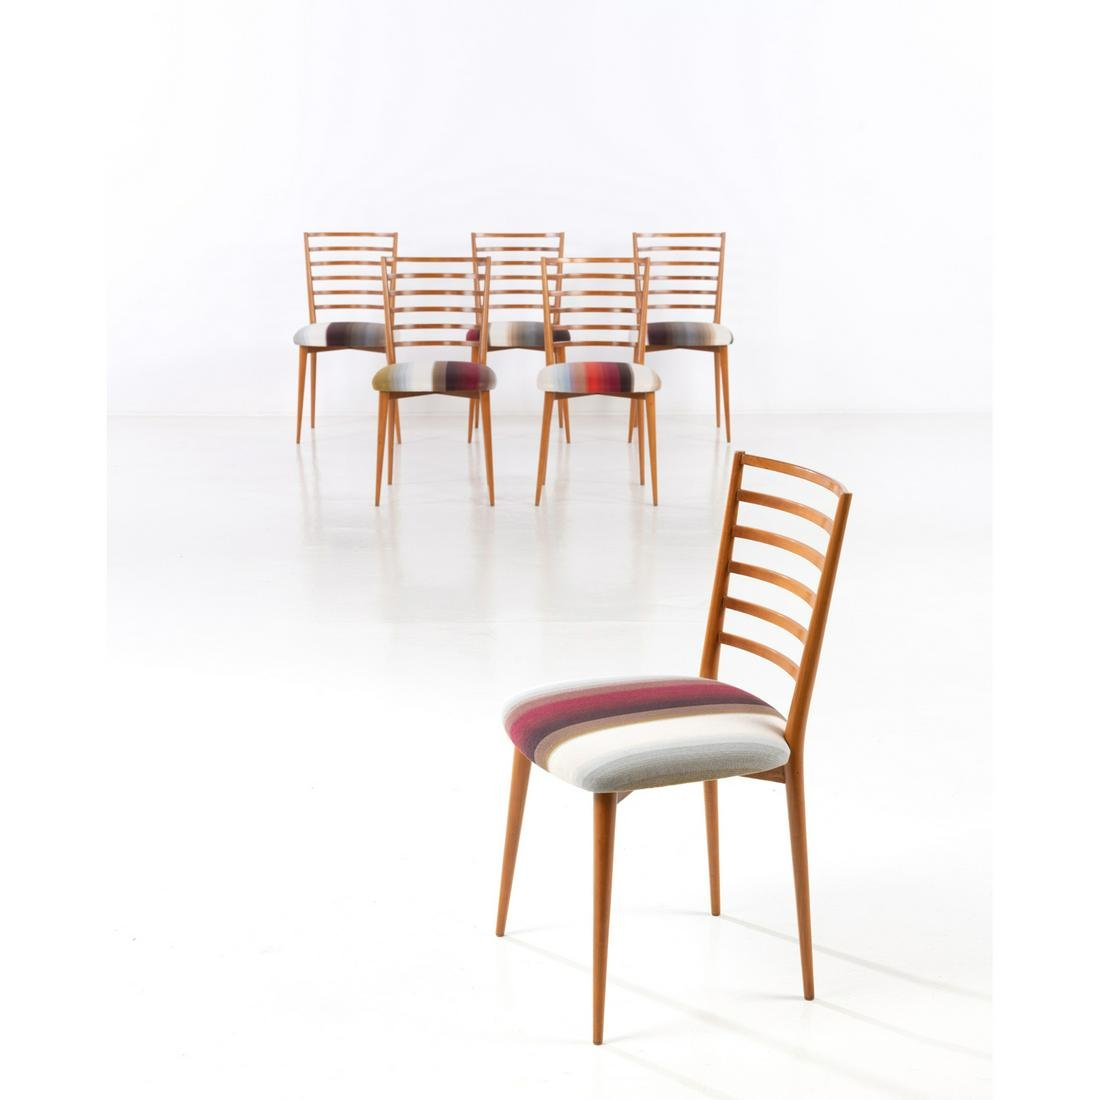 Joaquim Tenreiro (1906-1992) Set of six chairs